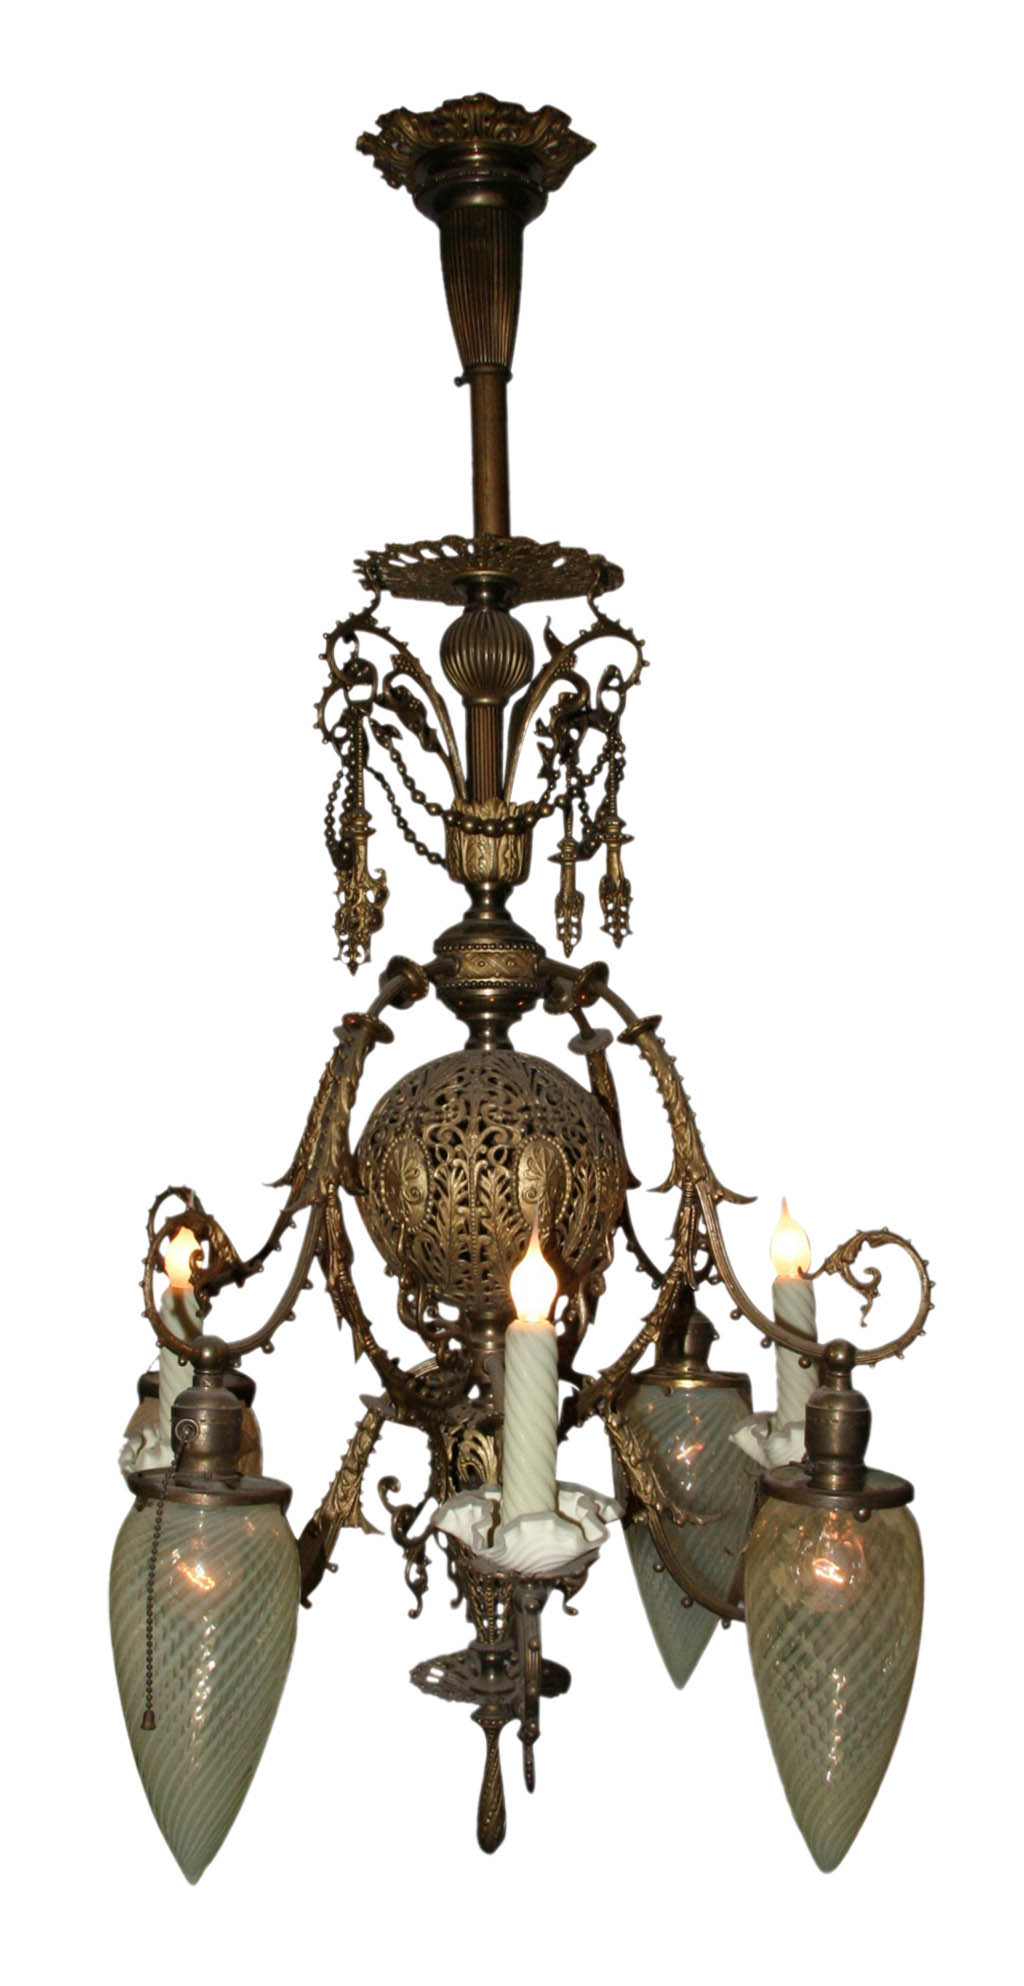 Antique gas electric chandeliers chandelier designs antique gas chandelier designs aloadofball Image collections